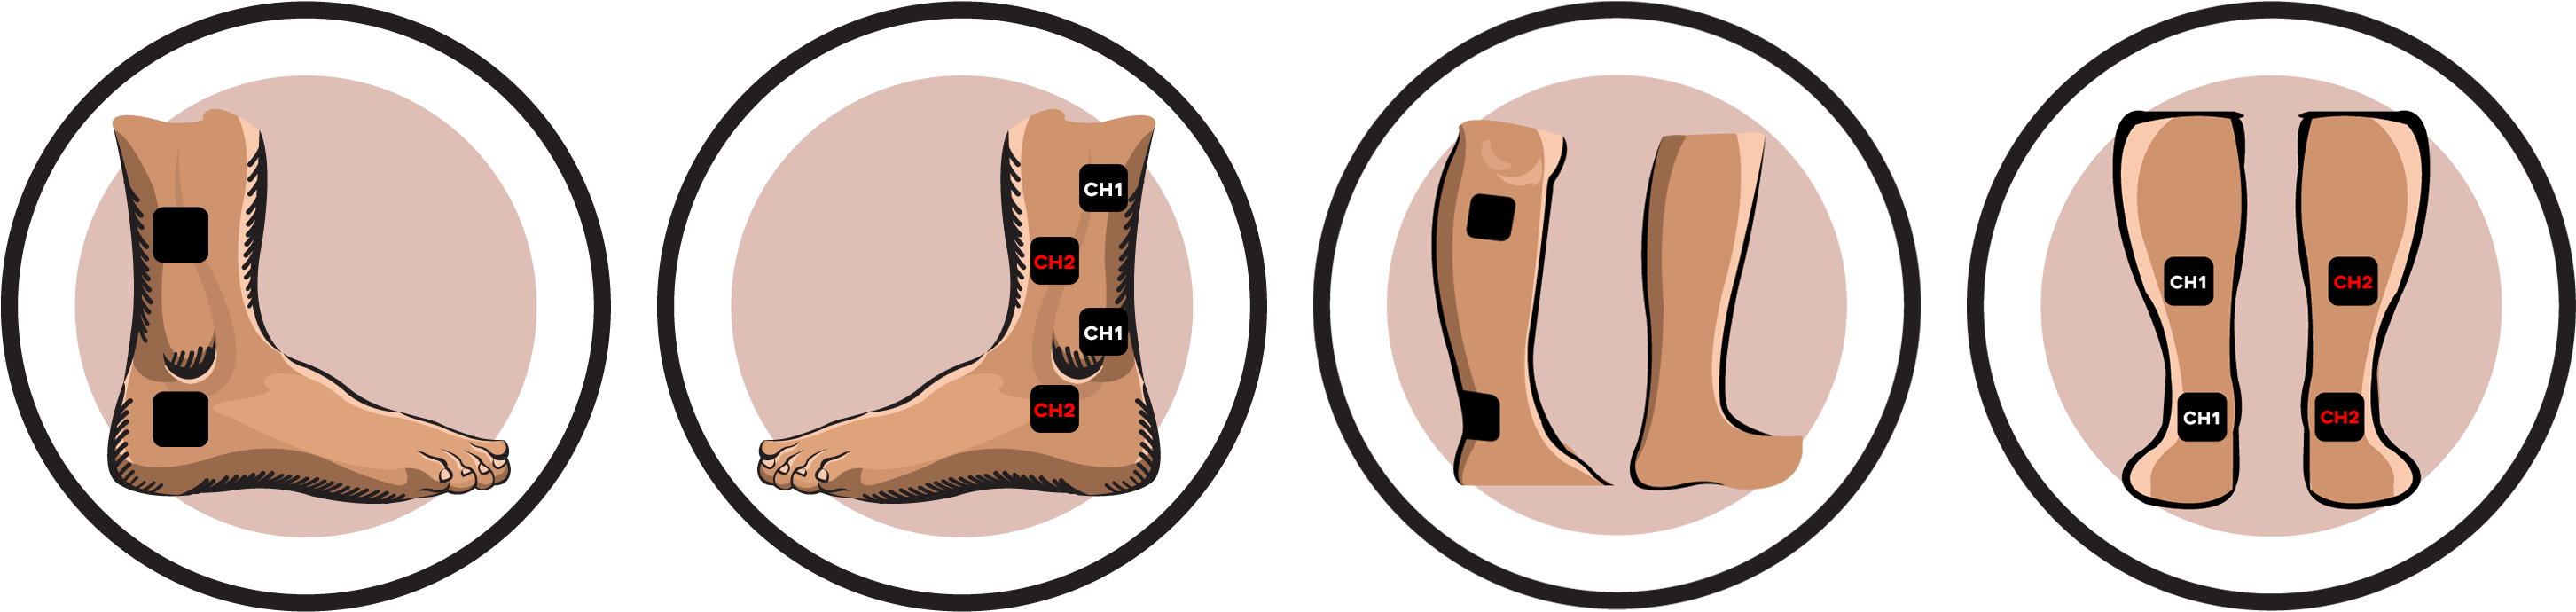 Tens unit clipart graphic free Electrode Pad Placement - Ankle Sprain Tens Unit Clipart ... graphic free